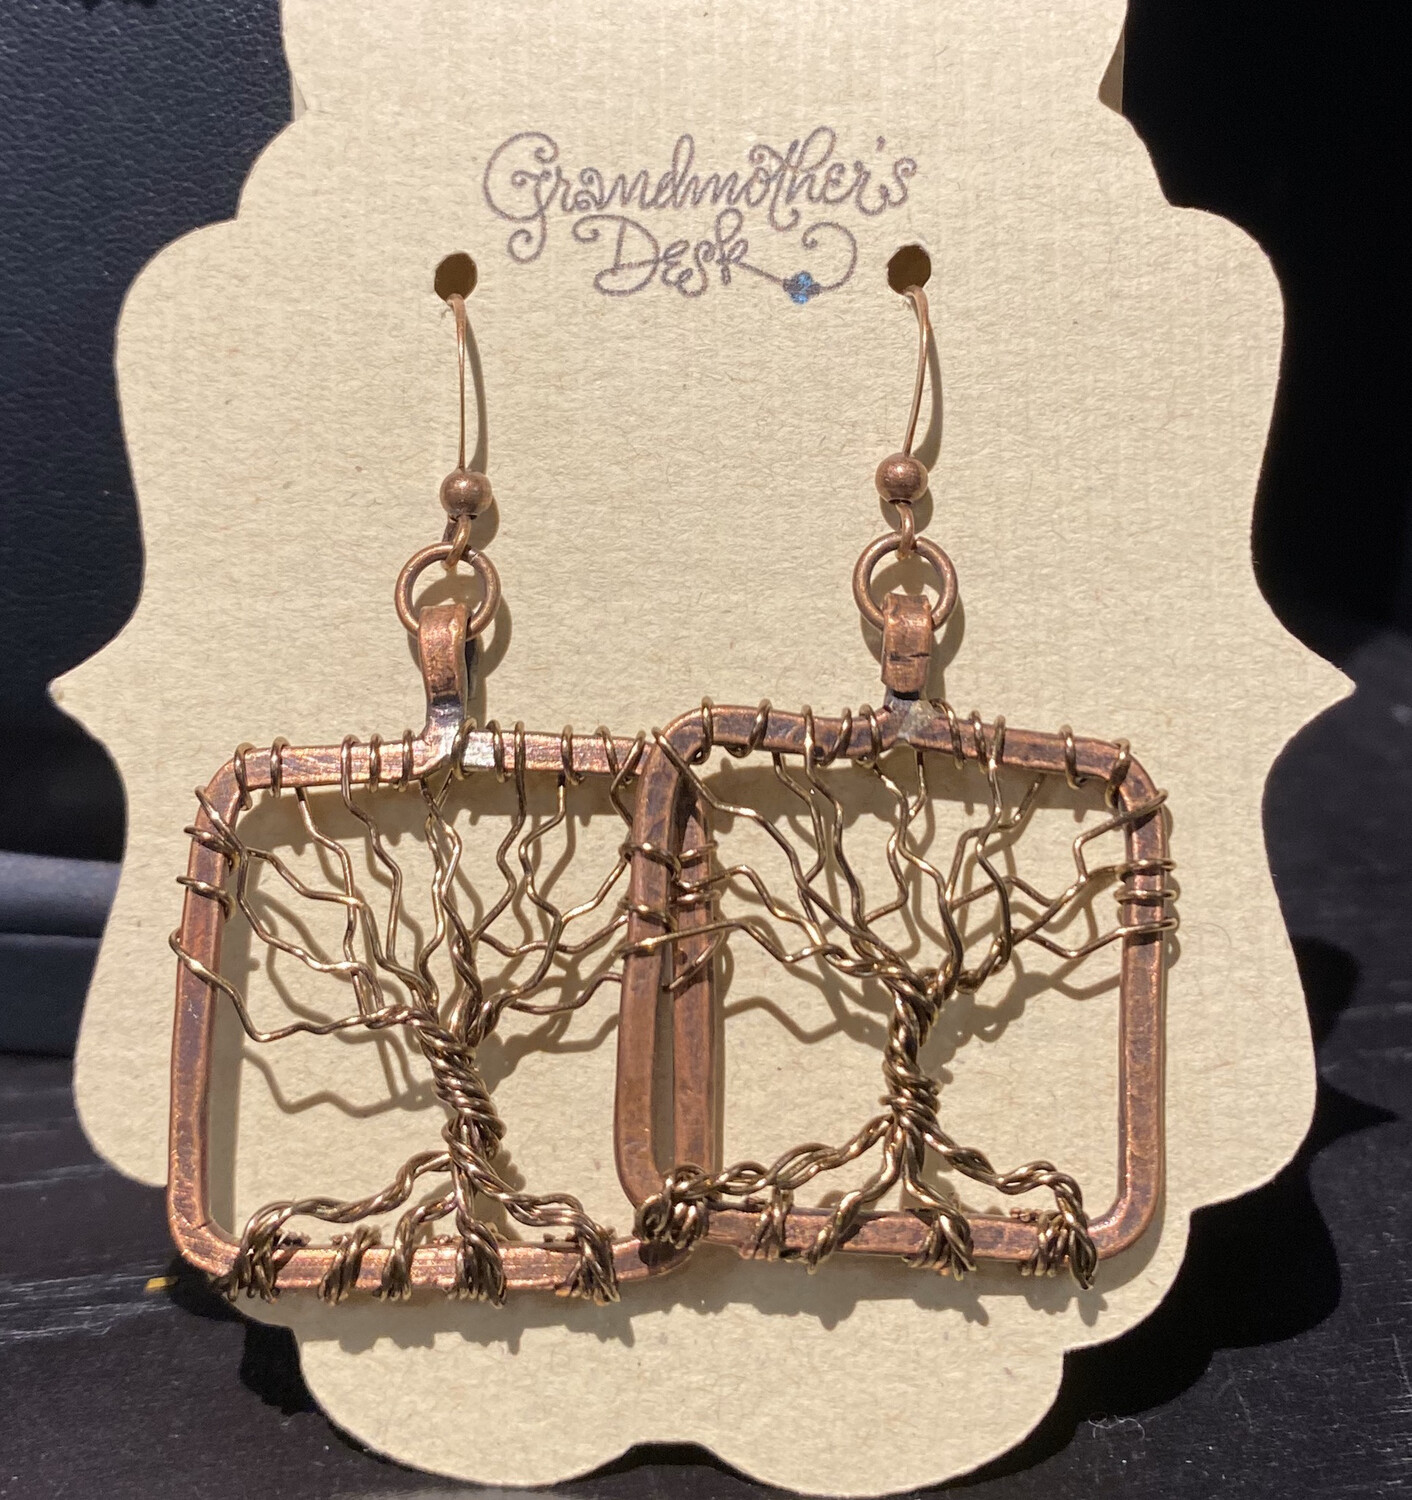 Grandmothers Desk Drop Copper Earrings Locally Made